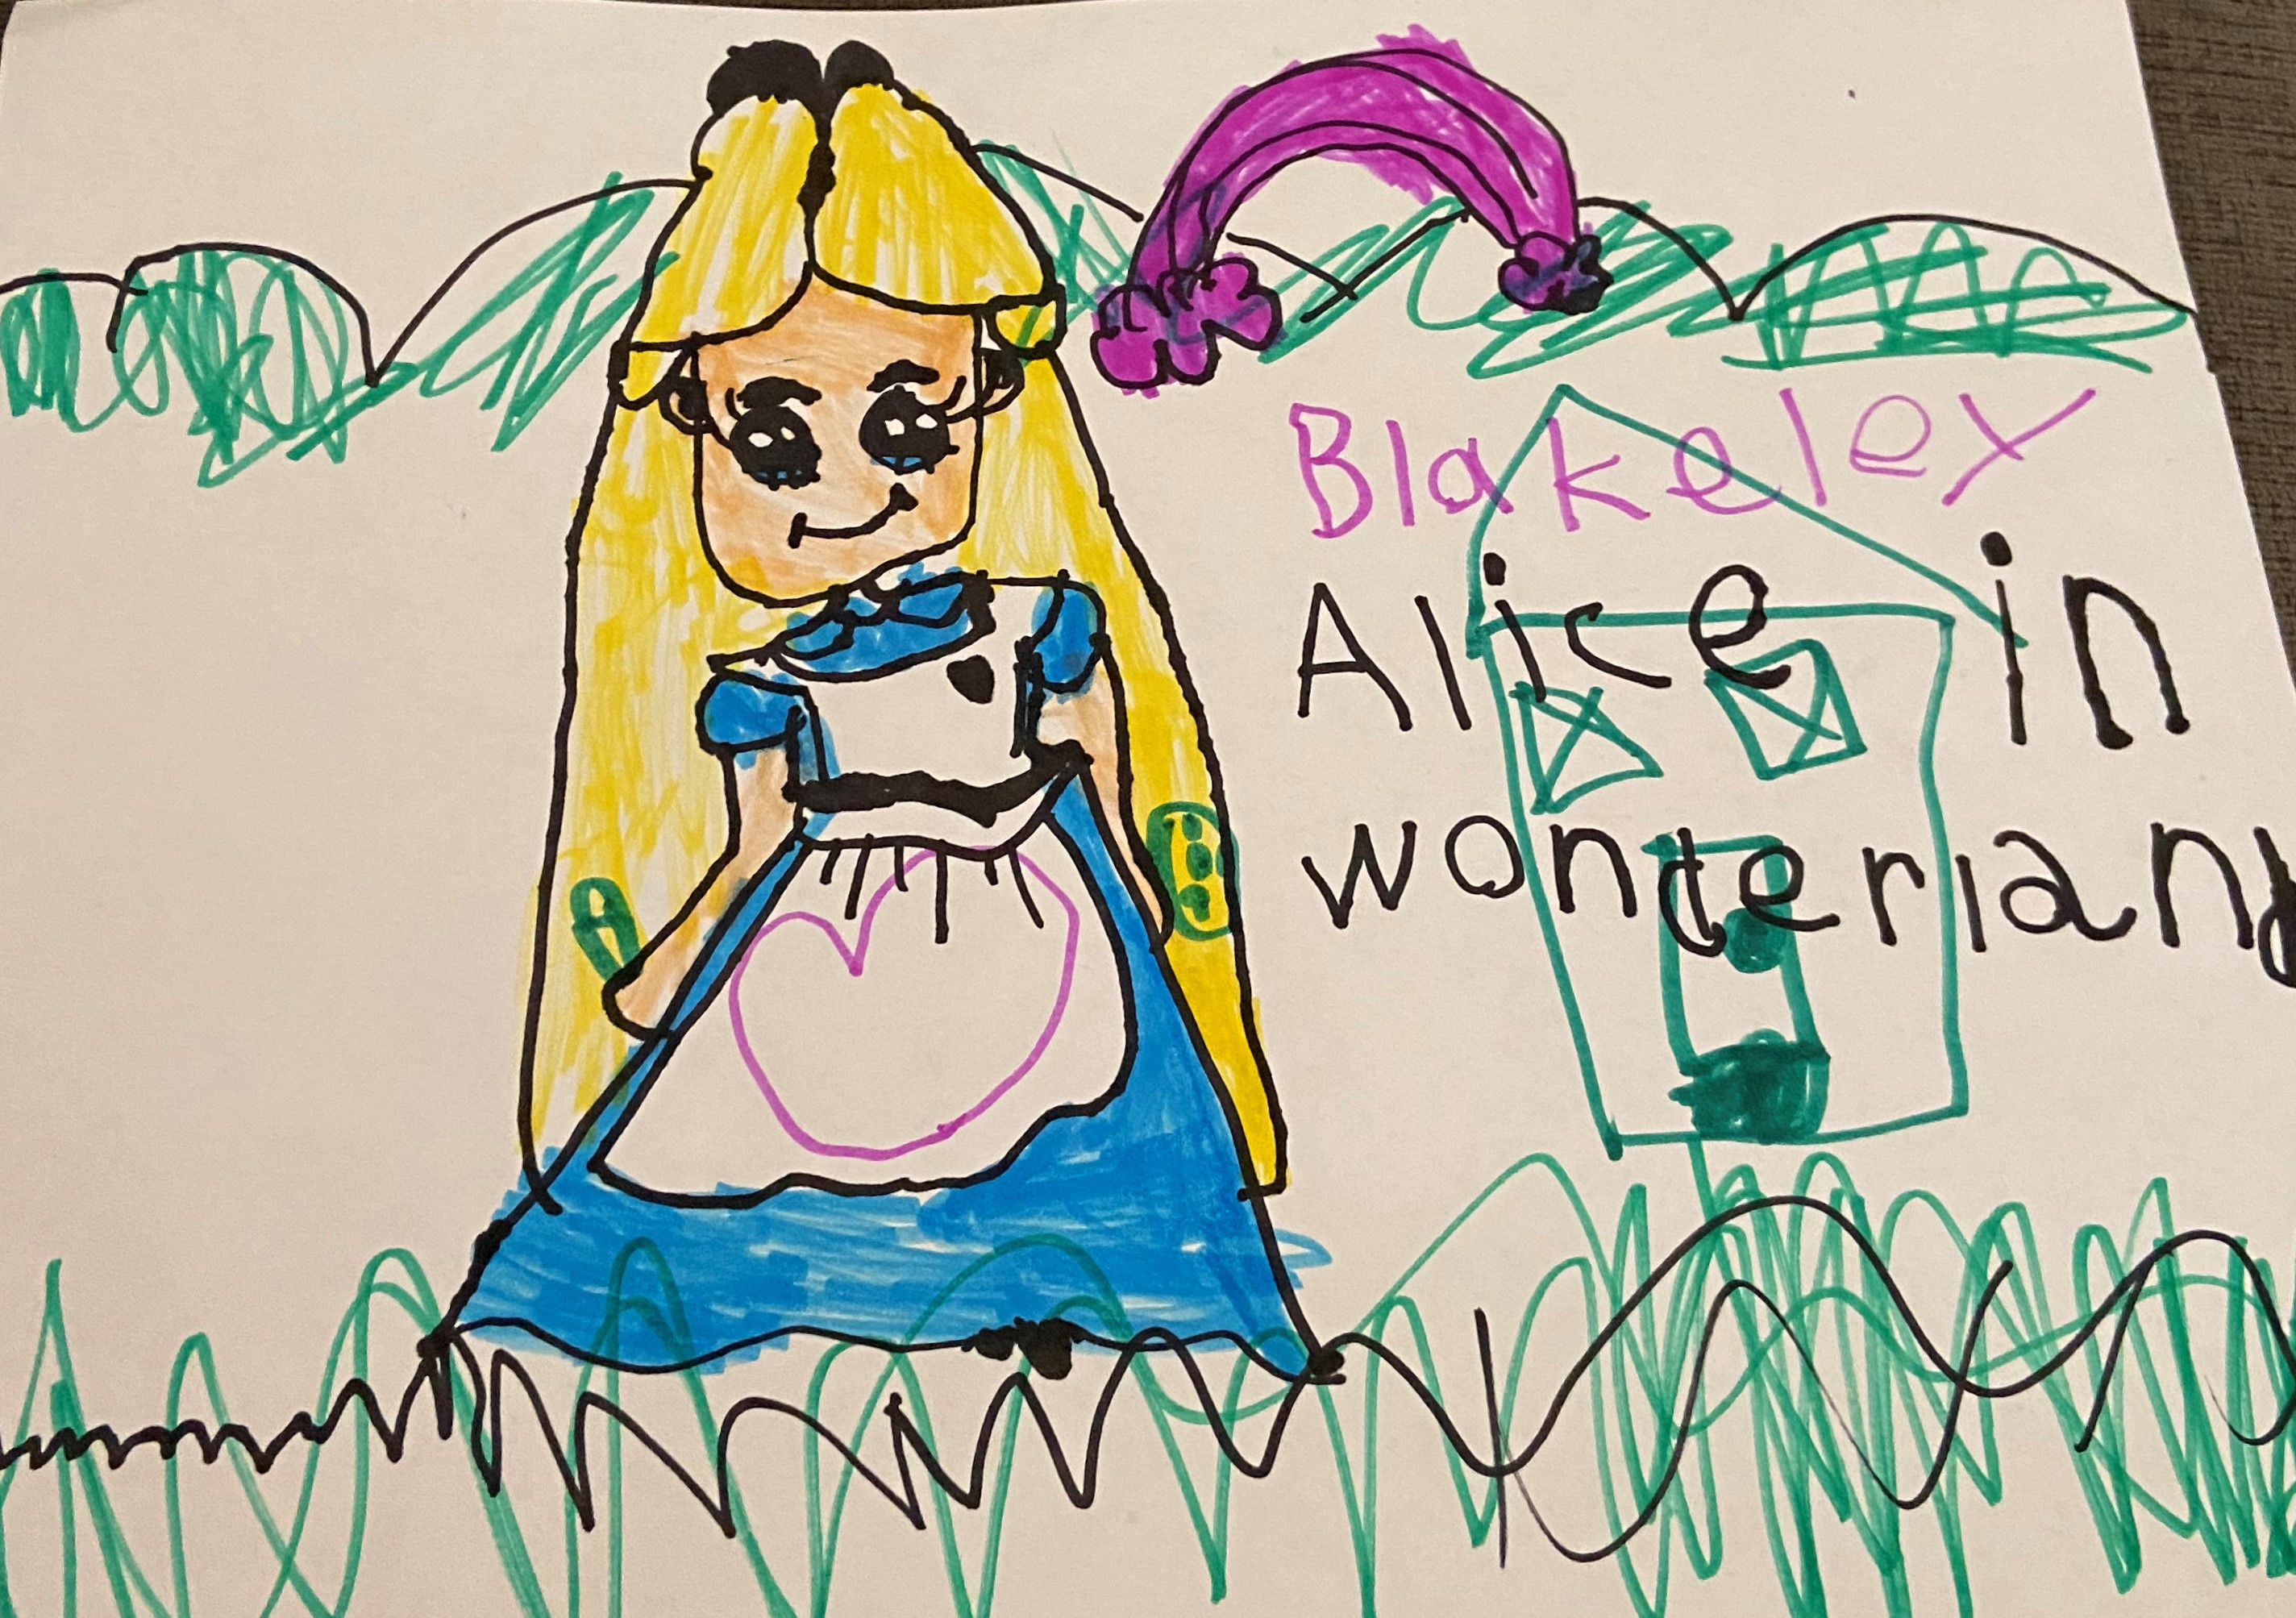 Alice's Wonderhouse by Blakeley Yeo